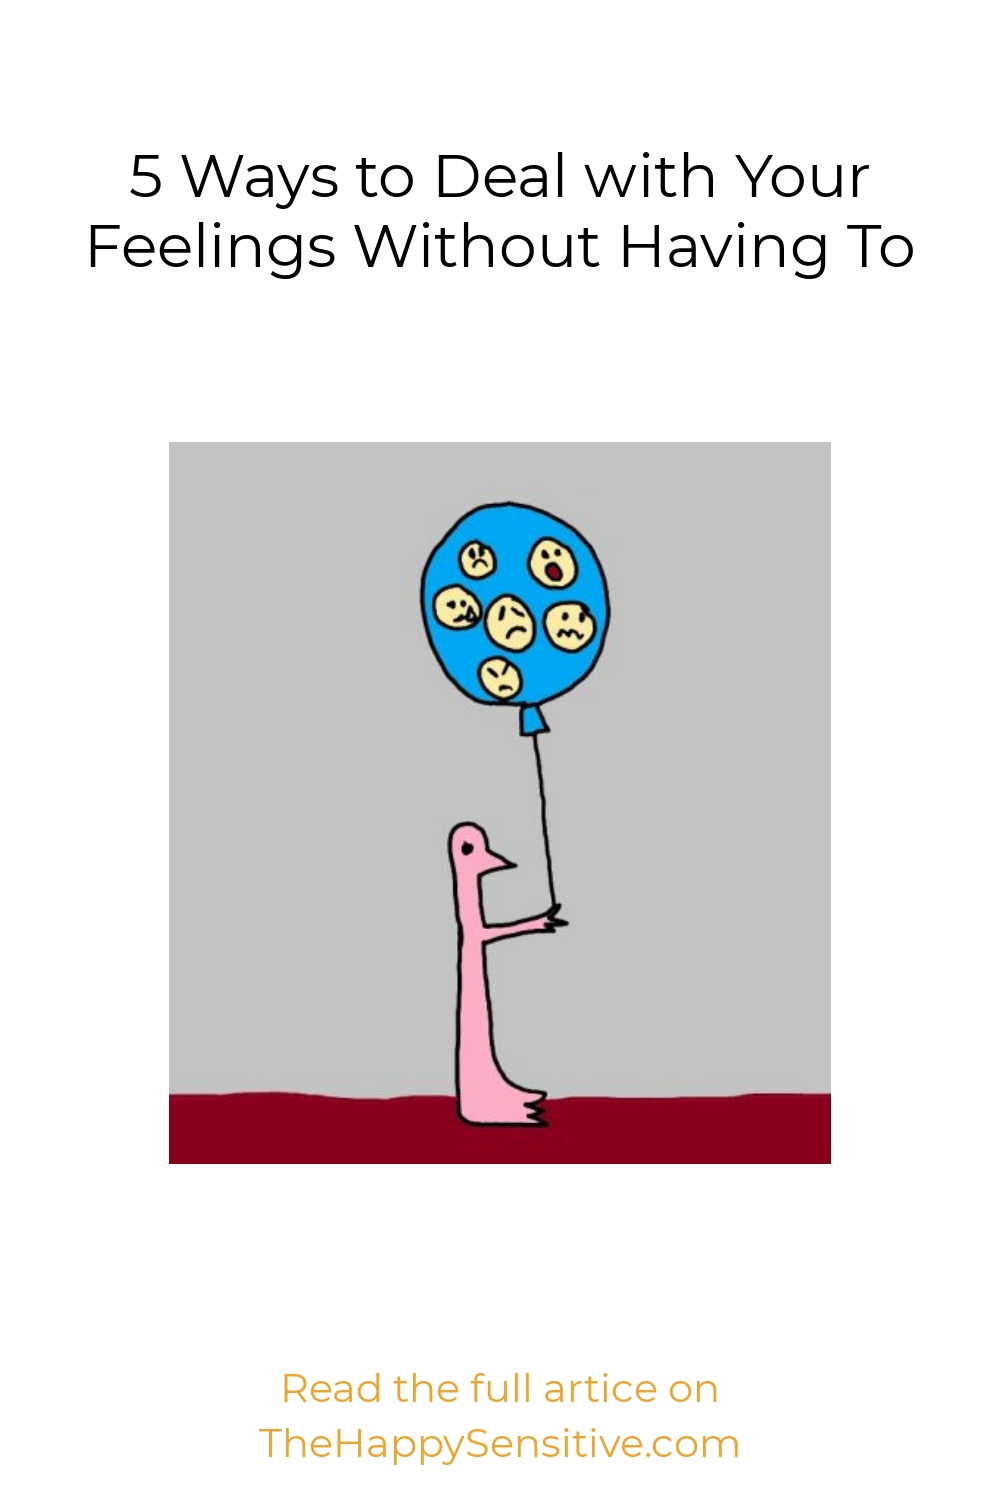 5 Ways to Deal with Your Feelings Without Having To